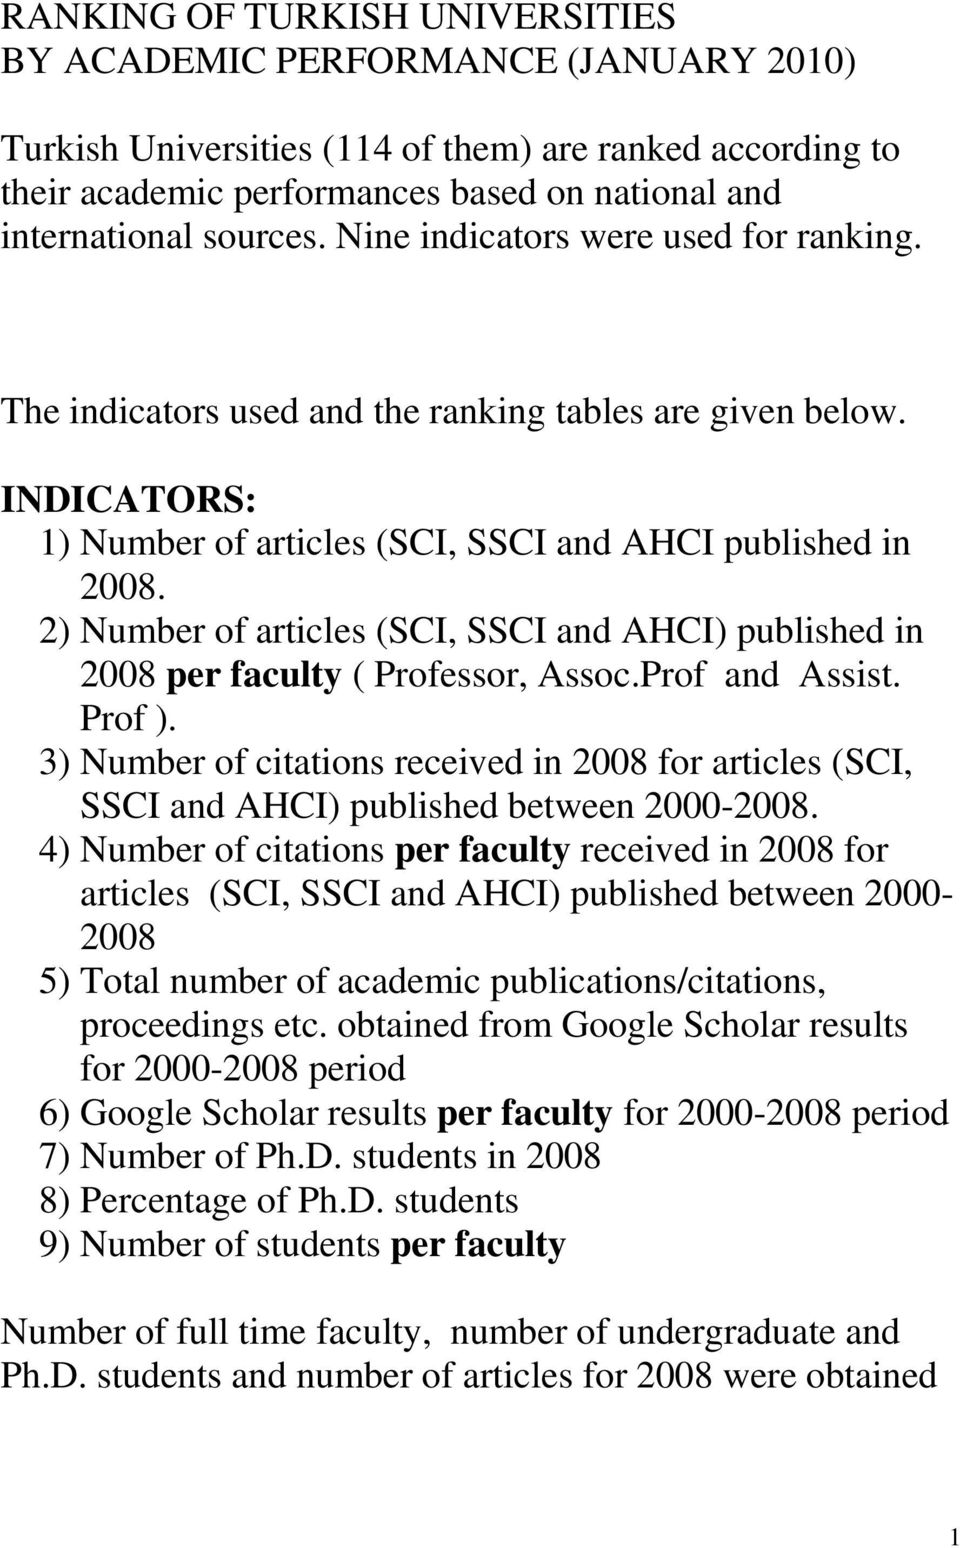 2) Number of articles (SCI, SSCI and AHCI) published in 2008 per faculty ( Professor, Assoc.Prof and Assist. Prof ).